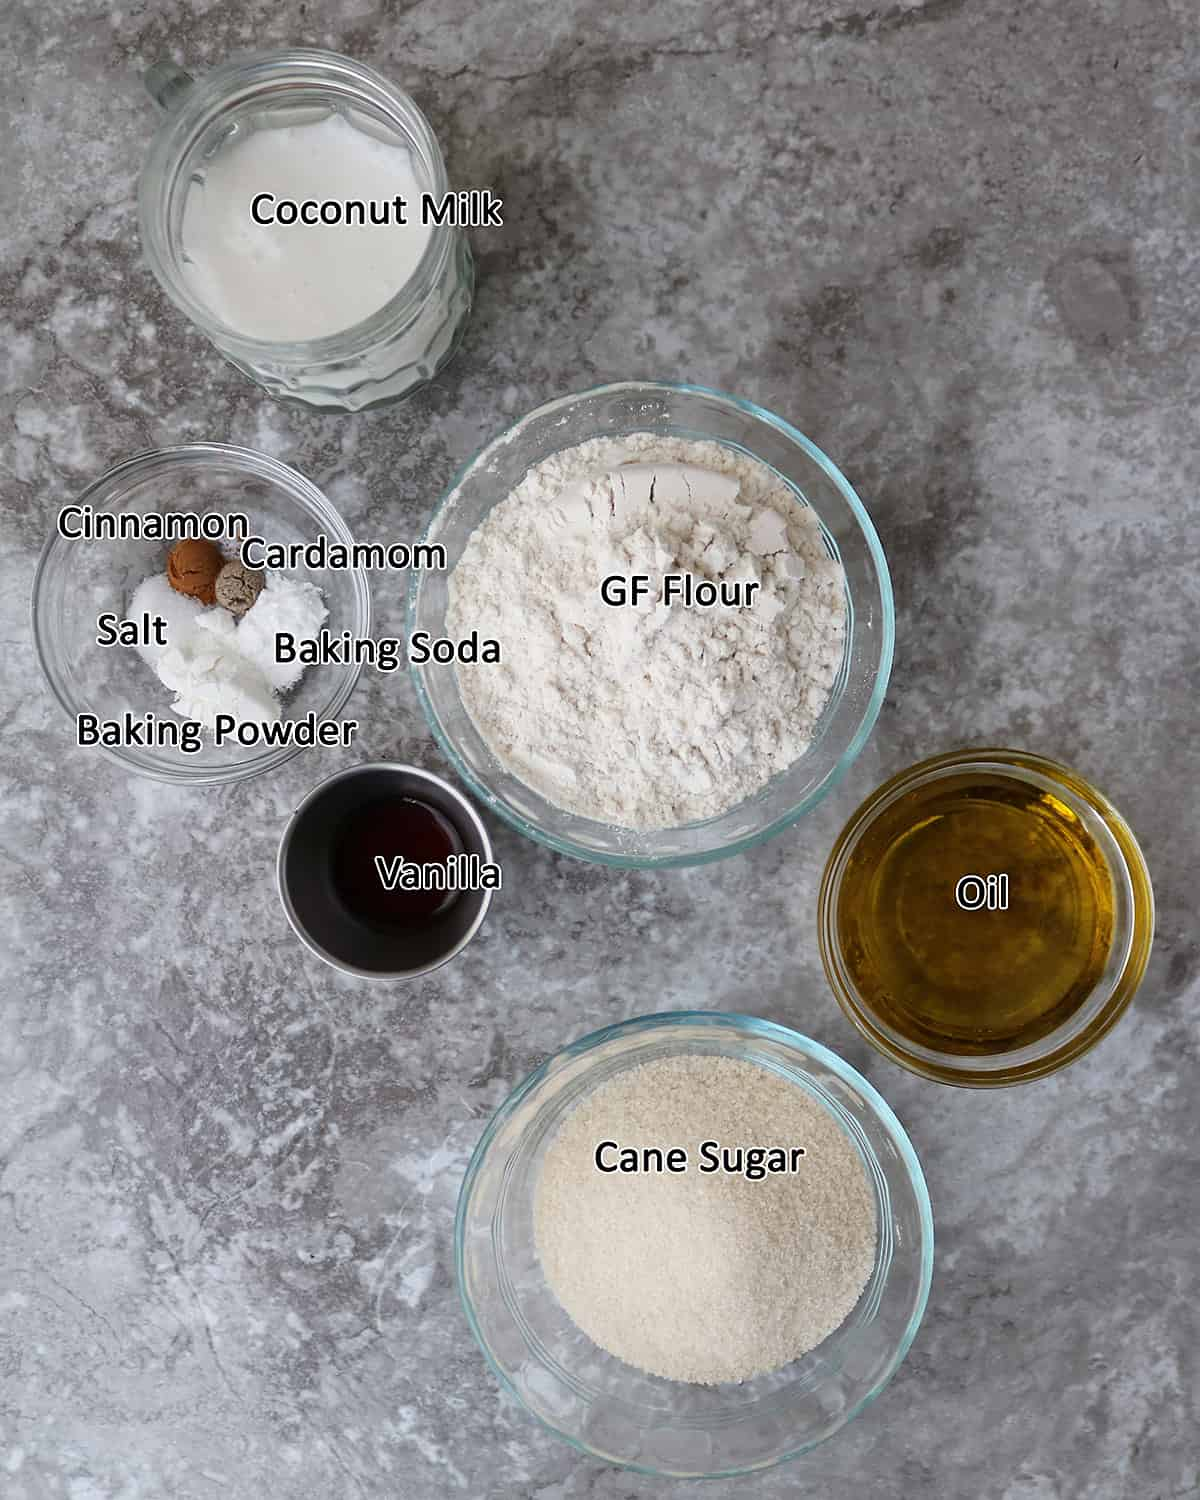 Ingredients to make vegan Cupcakes